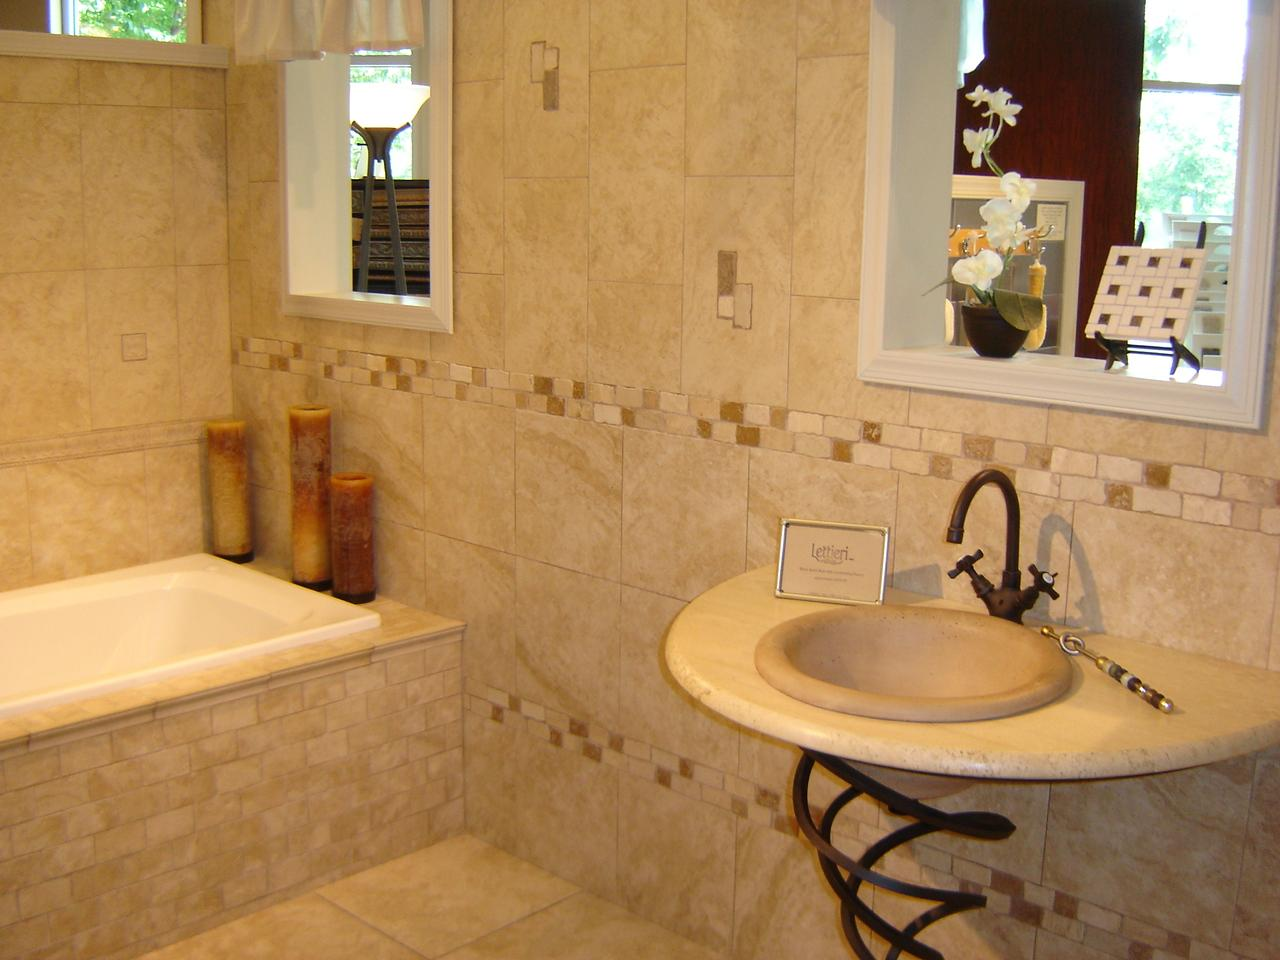 Bathroom tile design ideas for Tile designs for bathroom